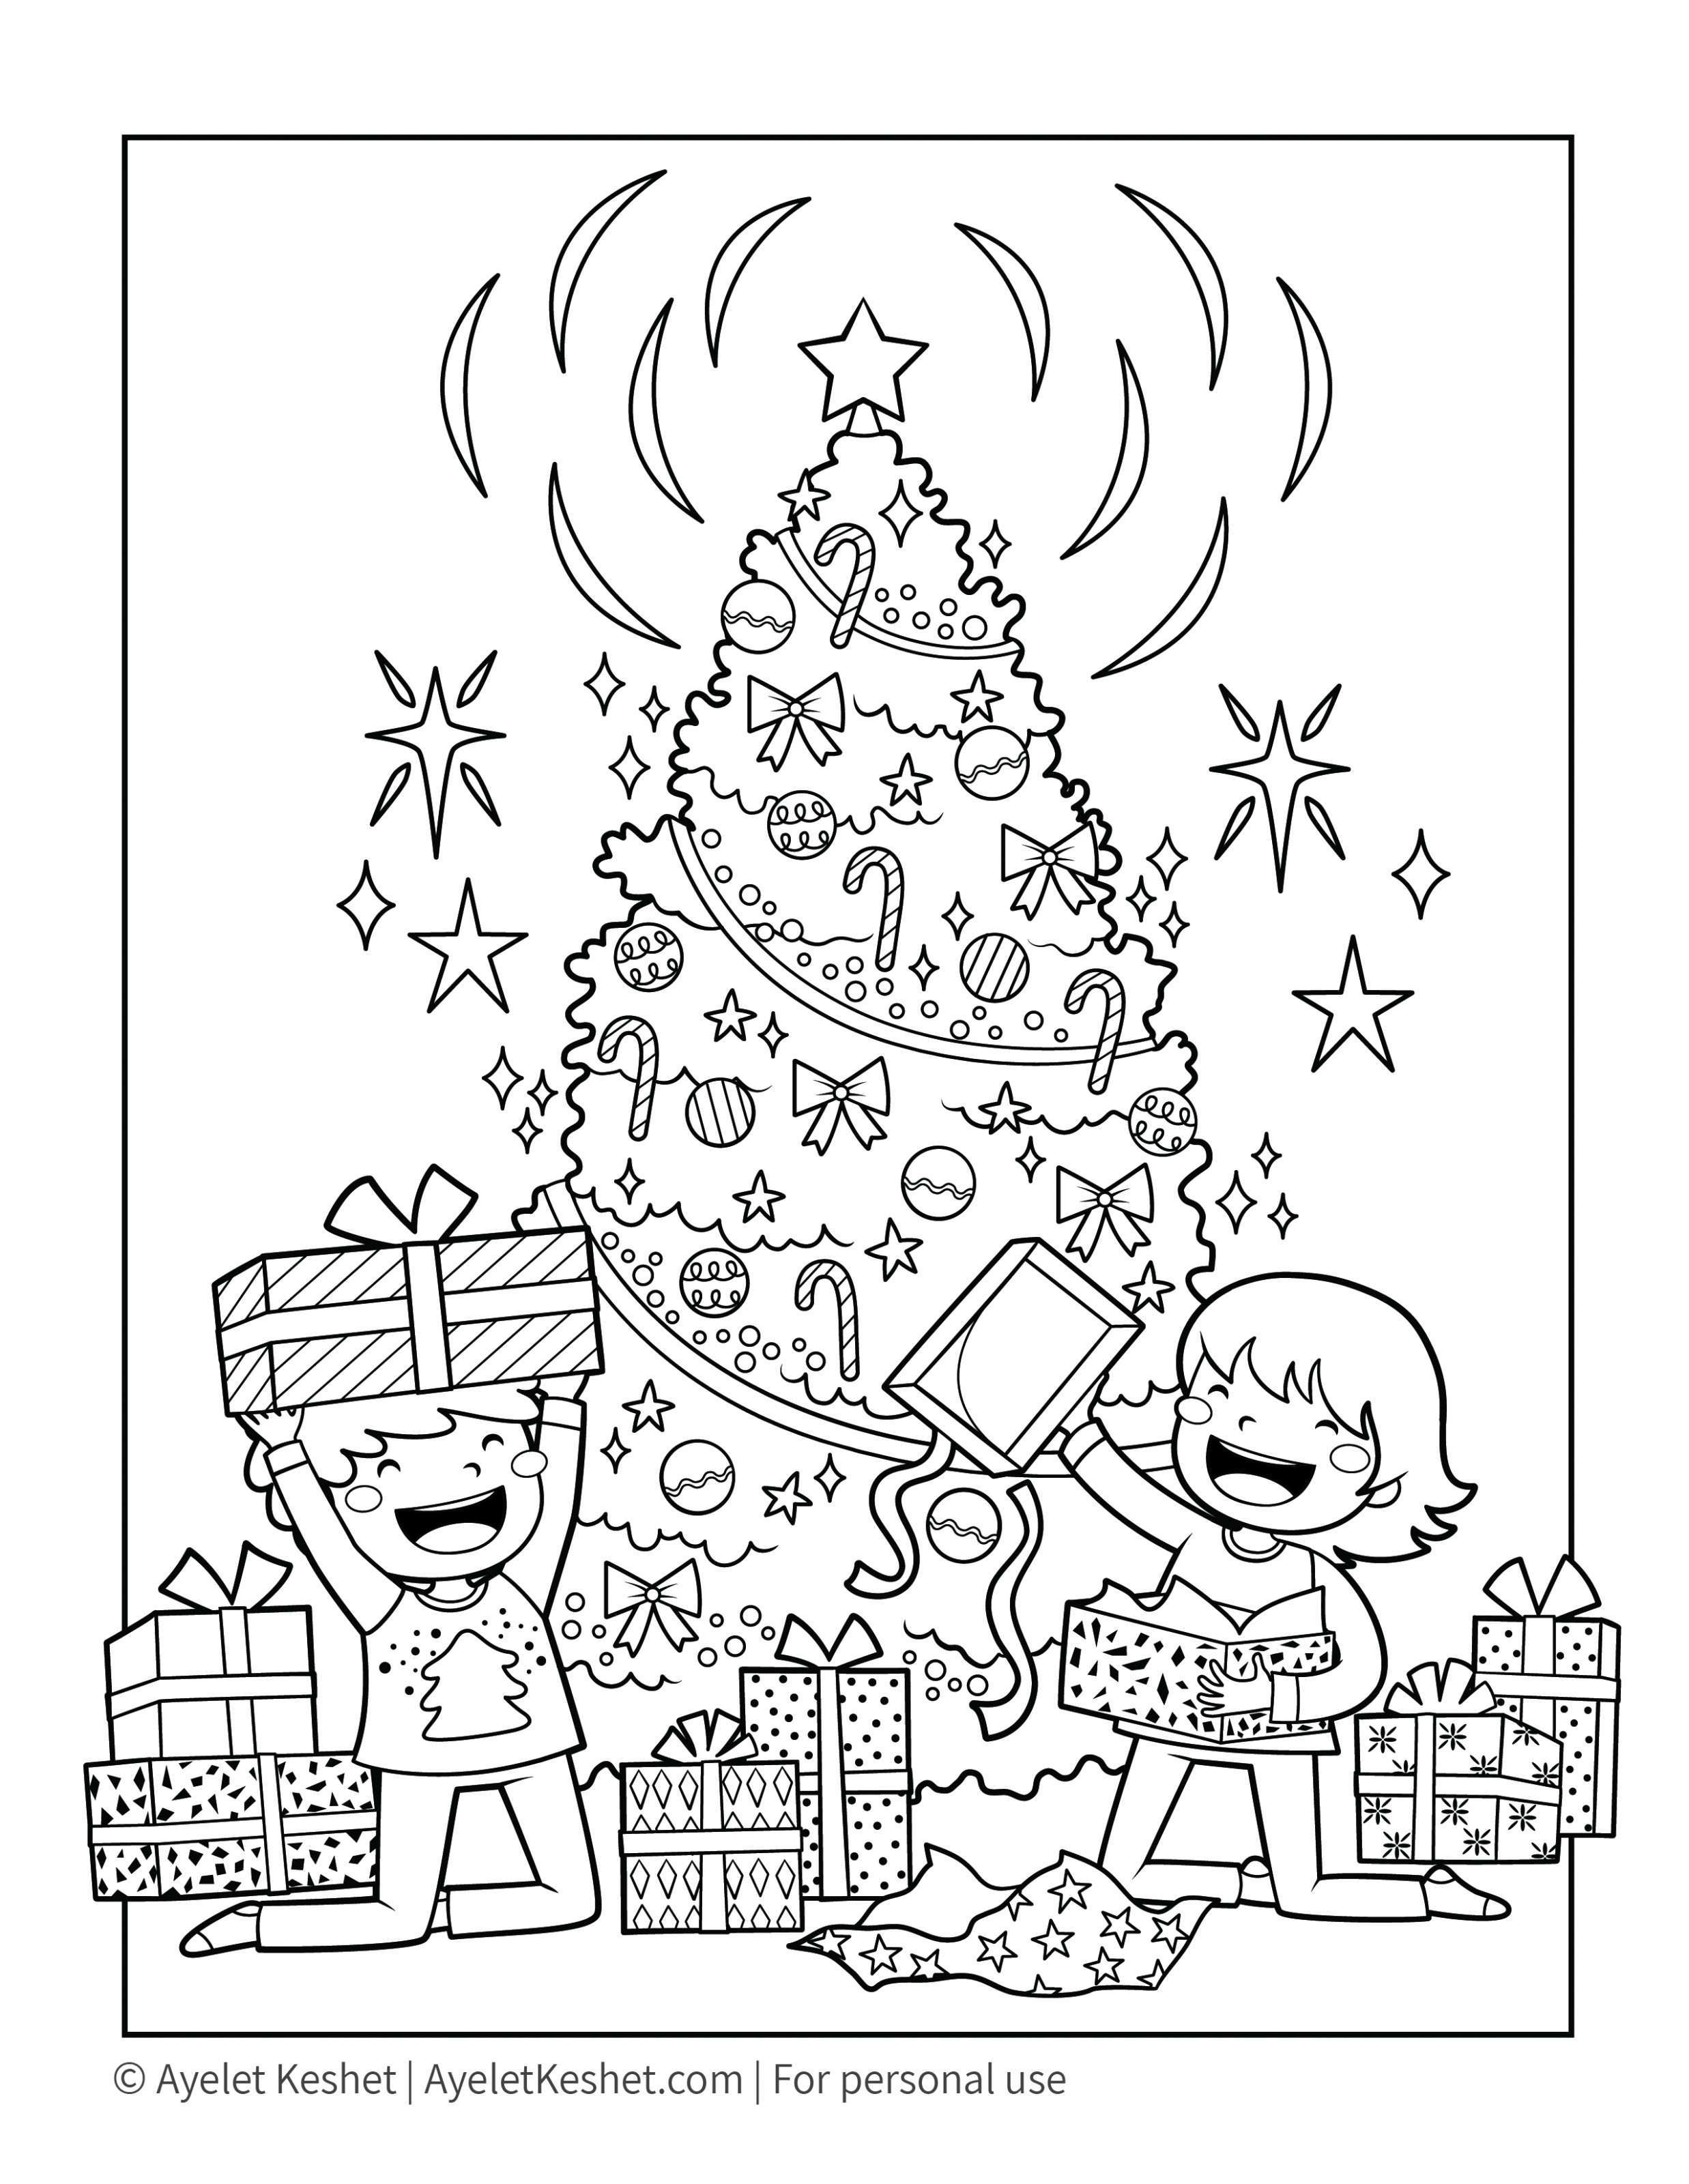 Free Printable Christmas Coloring Pages for kids – Ayelet Keshet – Christmas Coloring Downloads